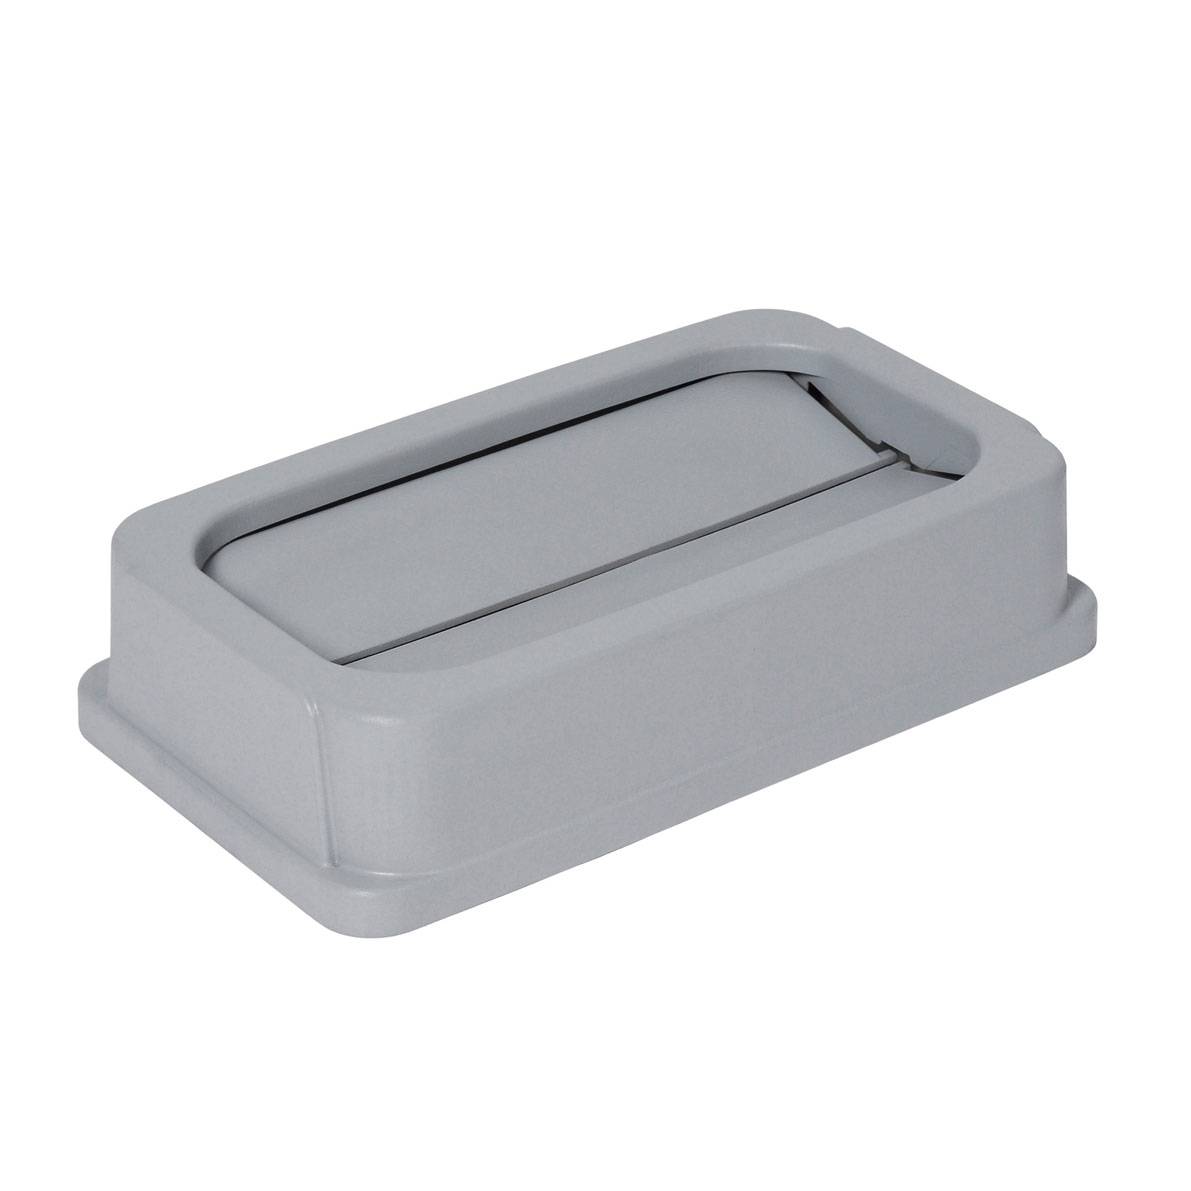 Royal Industries CCP 7325GY trash receptacle lid / top